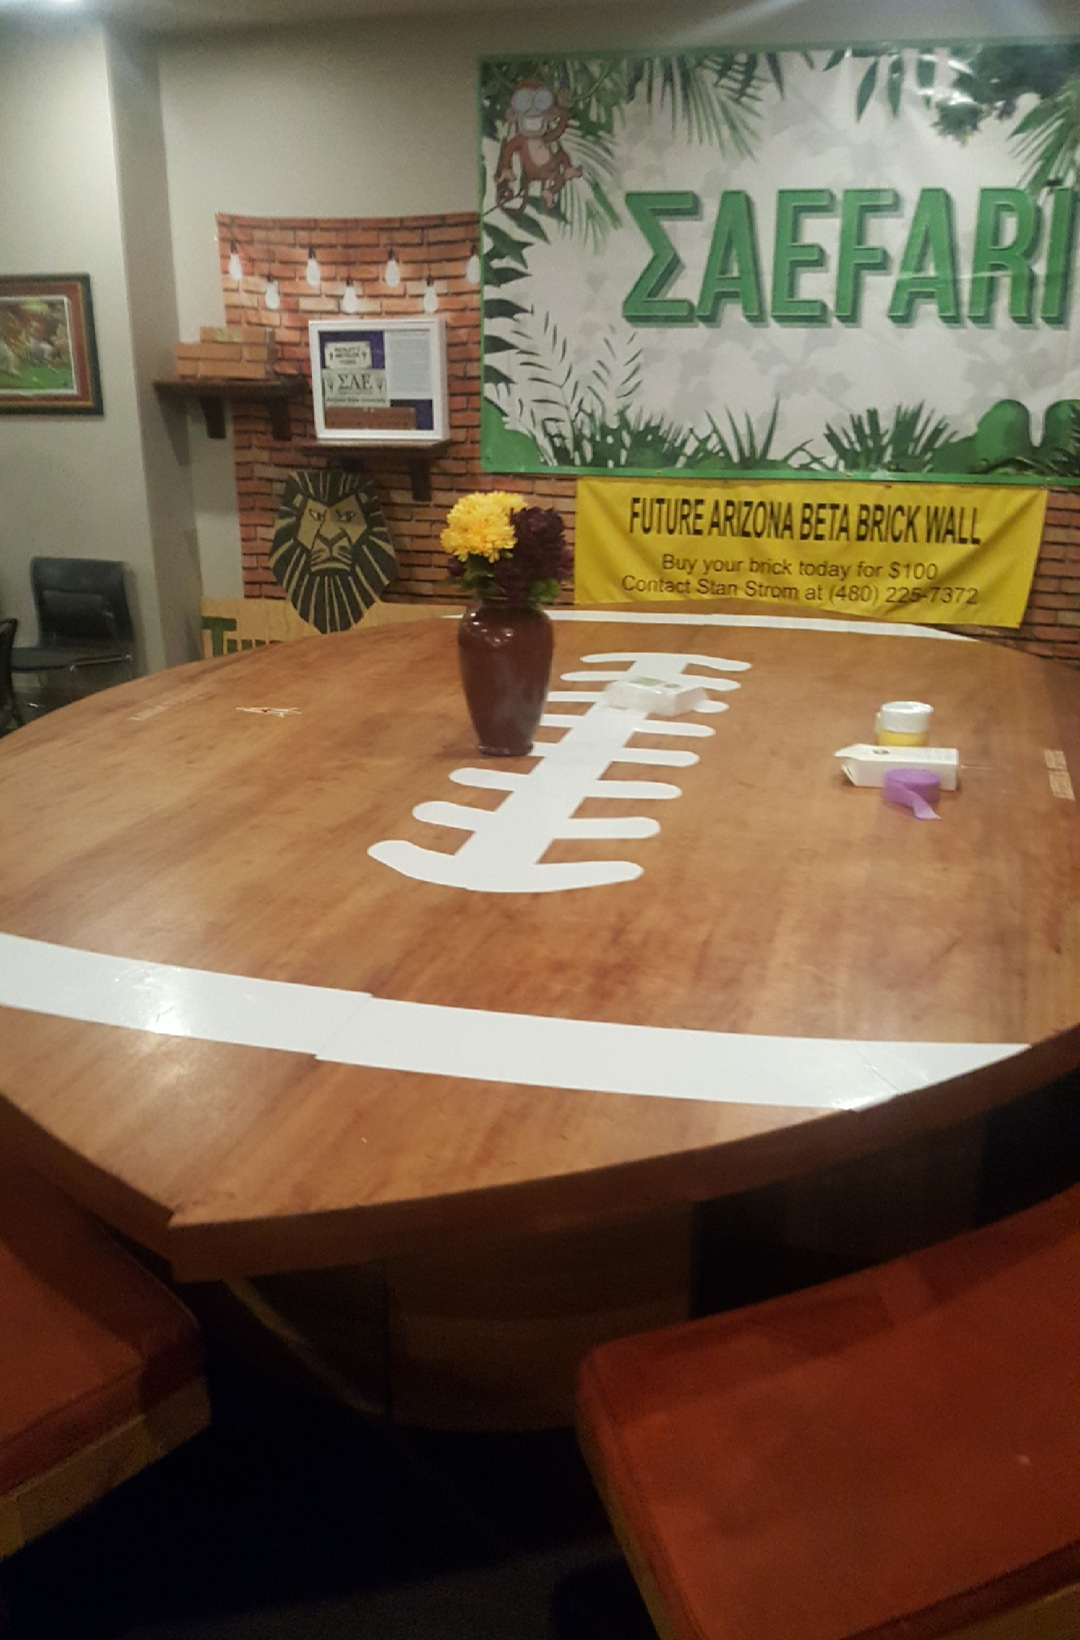 2,800 pound 14' solid walnut table for ASU chapter